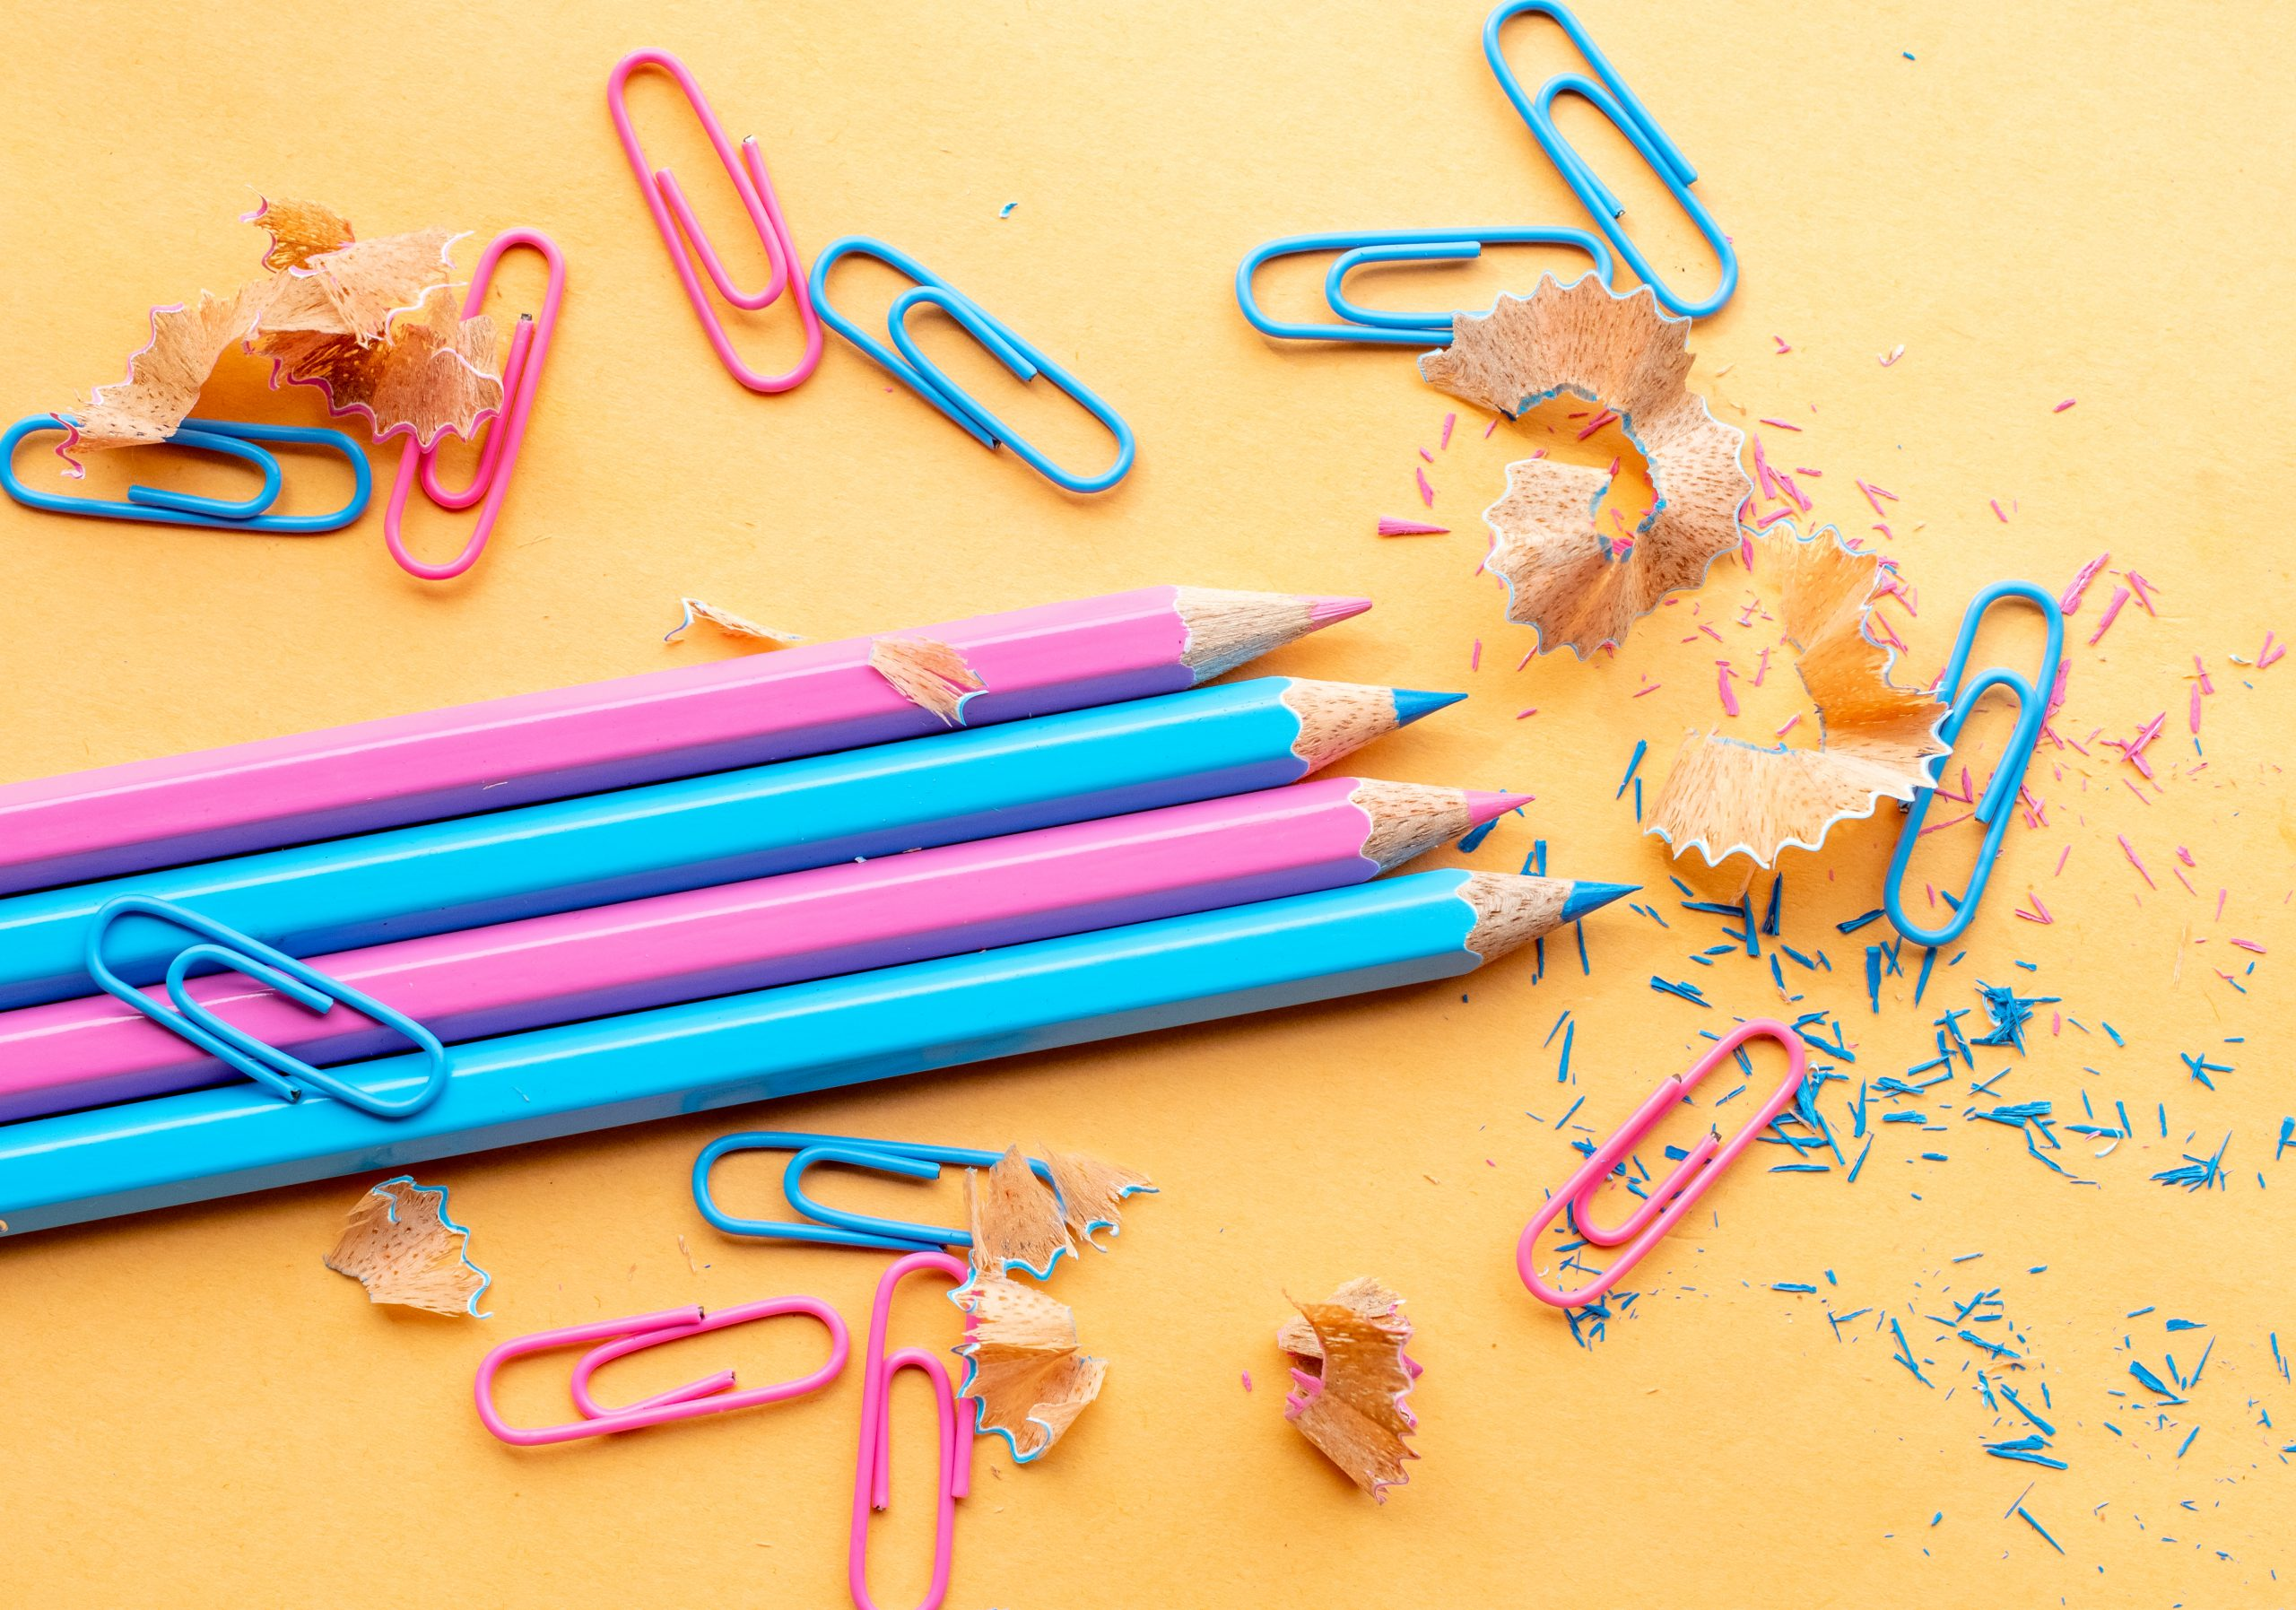 colour pencils and paper-clips